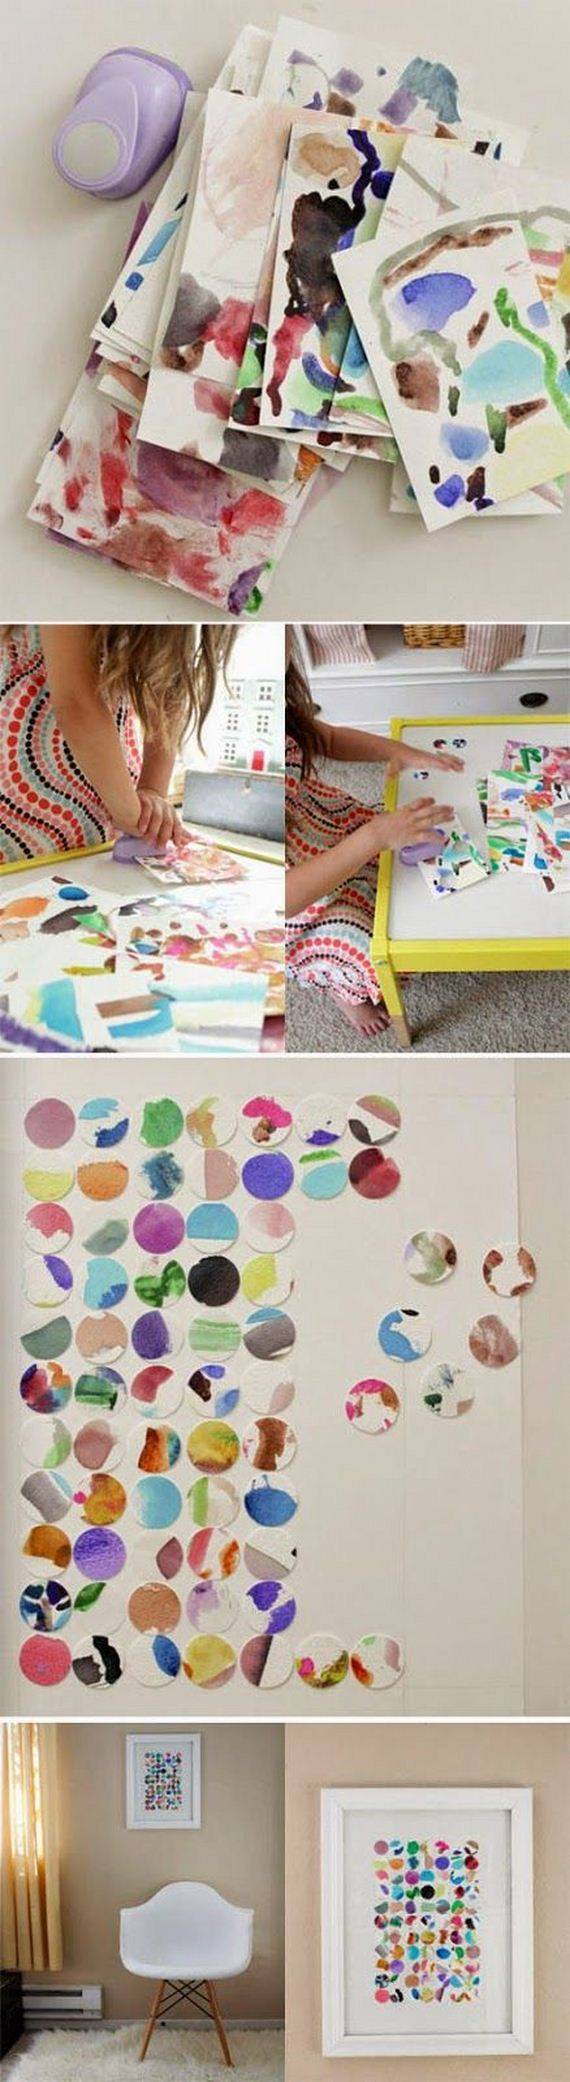 10Abstract-Art-projects